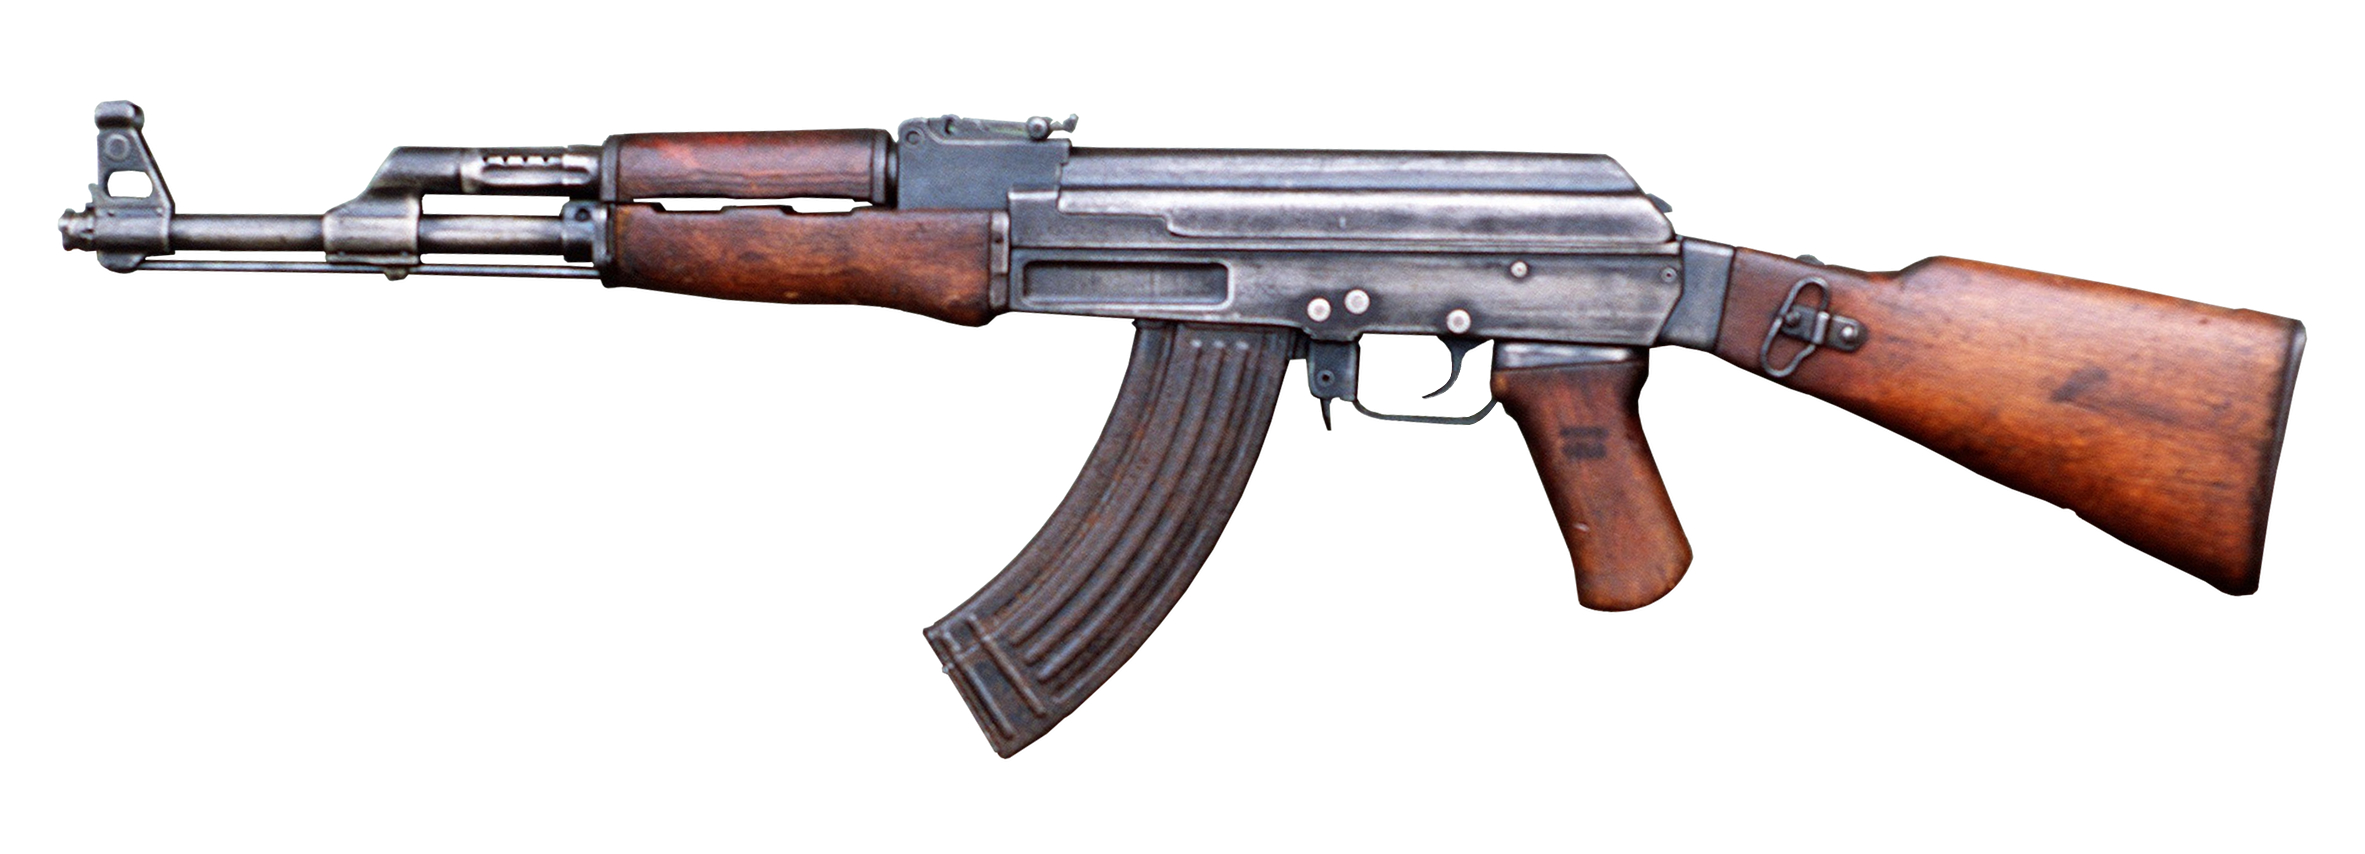 [Image: AK-47_type_II_Part_DM-ST-89-01131.jpg]